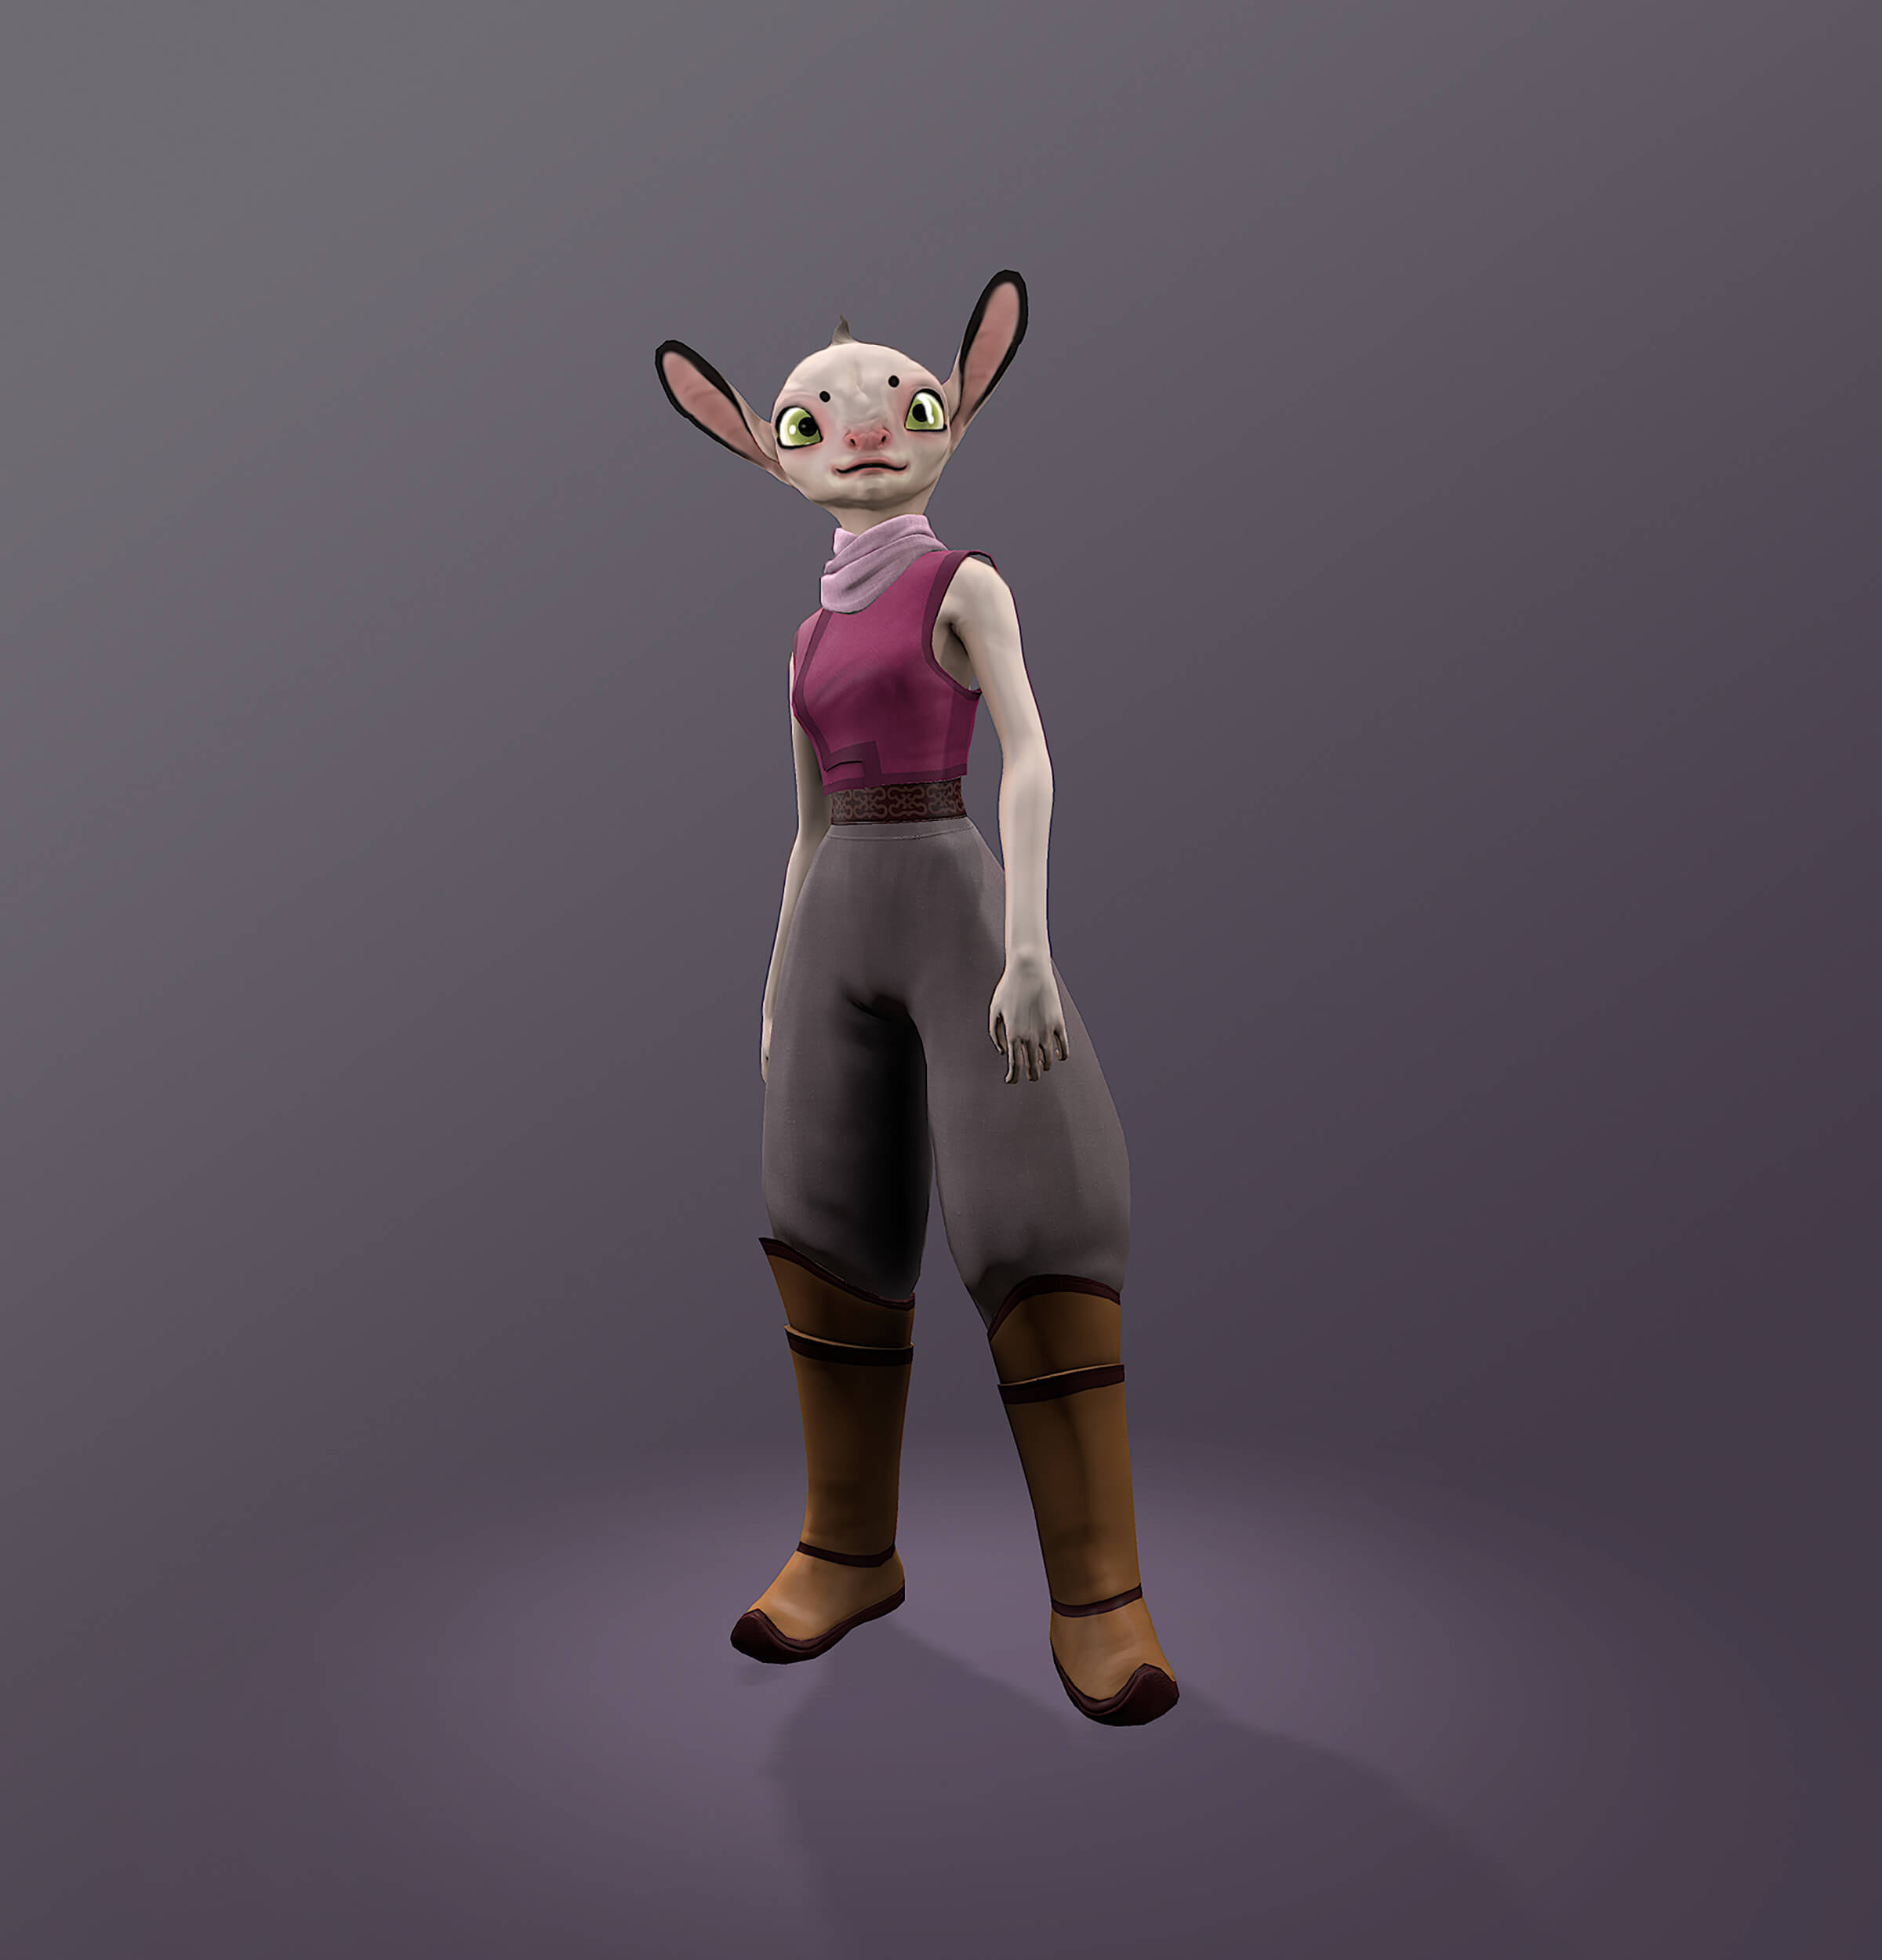 computer-generated 3D model of a character with a human body and vaguely cat-like face, with big ears and eyes